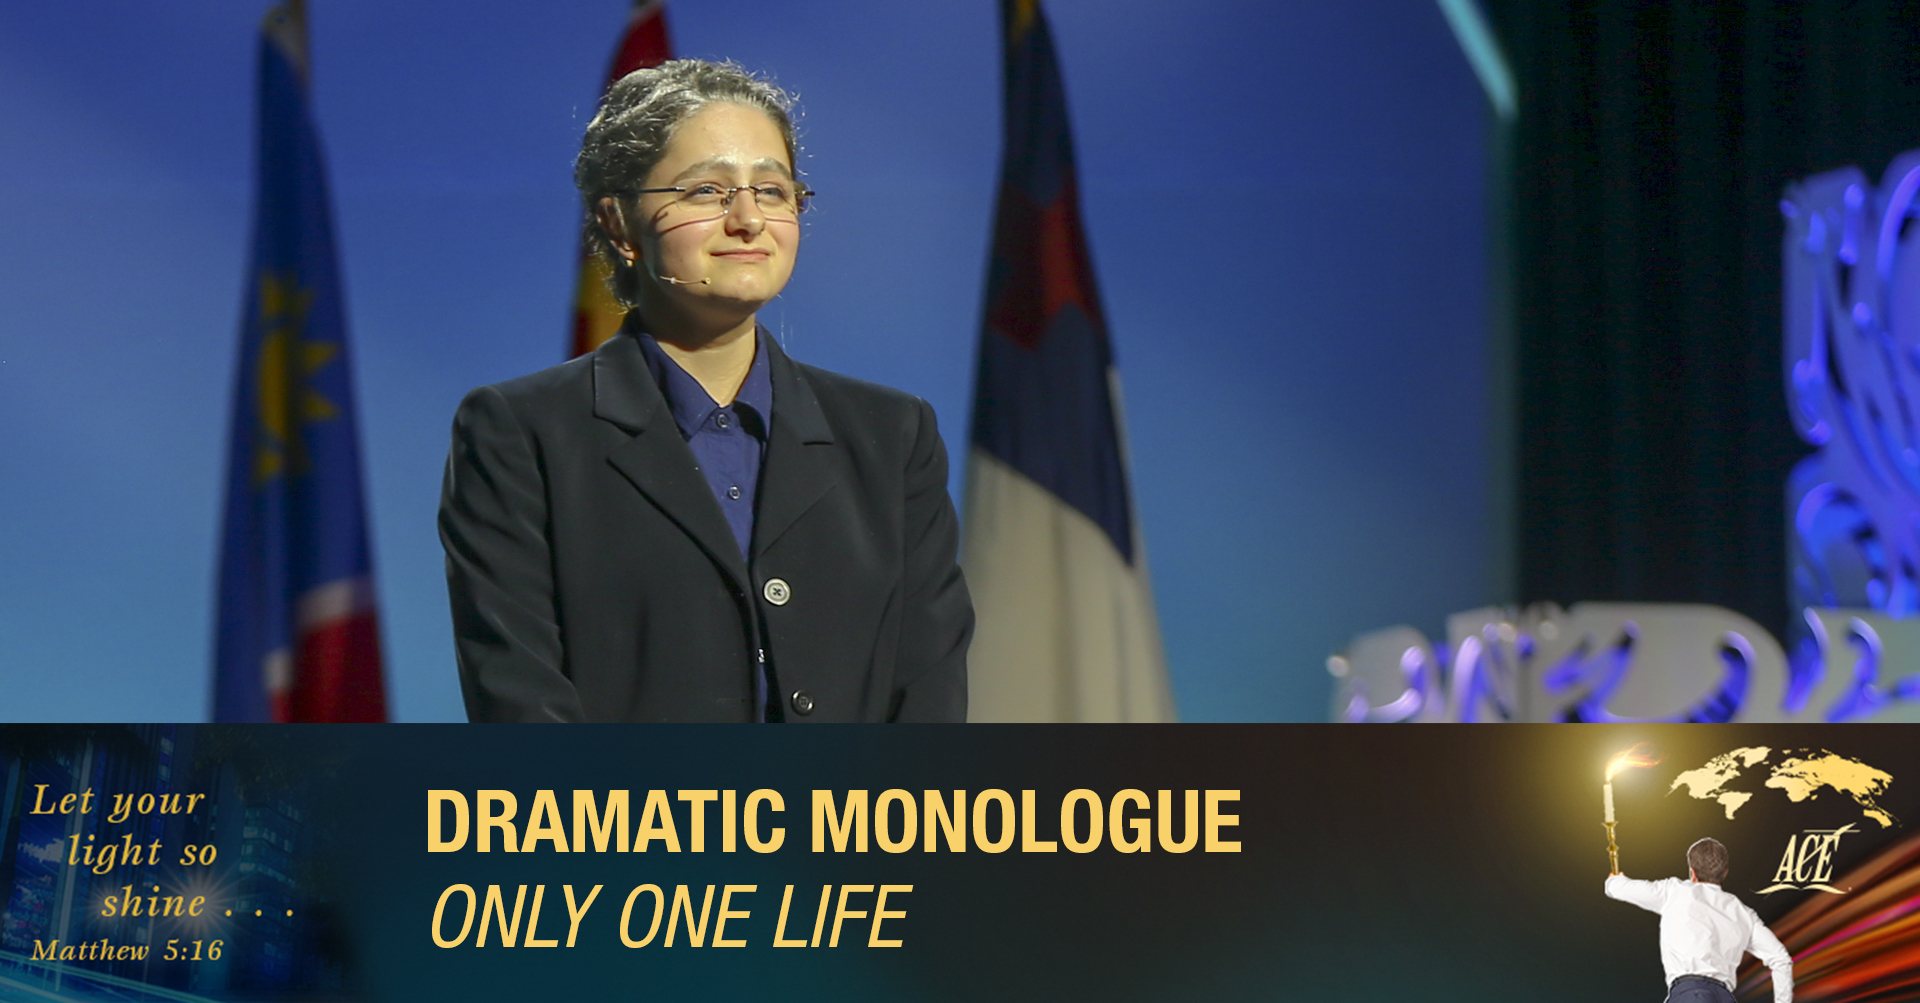 """Dramatic Monologue, """"Only One Life"""" - ISC 2019"""